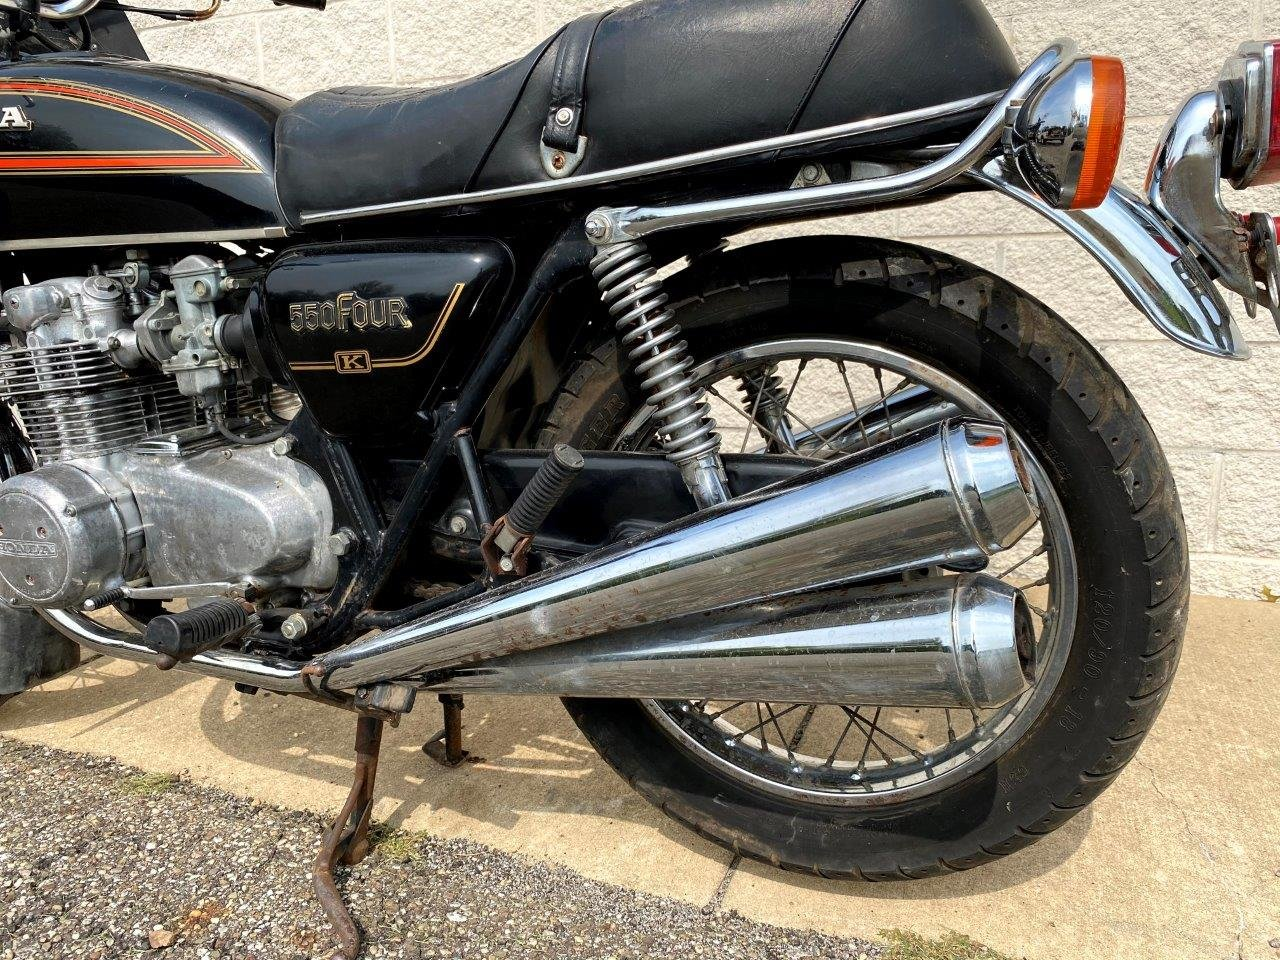 1978 Honda CB550K3 For Sale (picture 3 of 6)